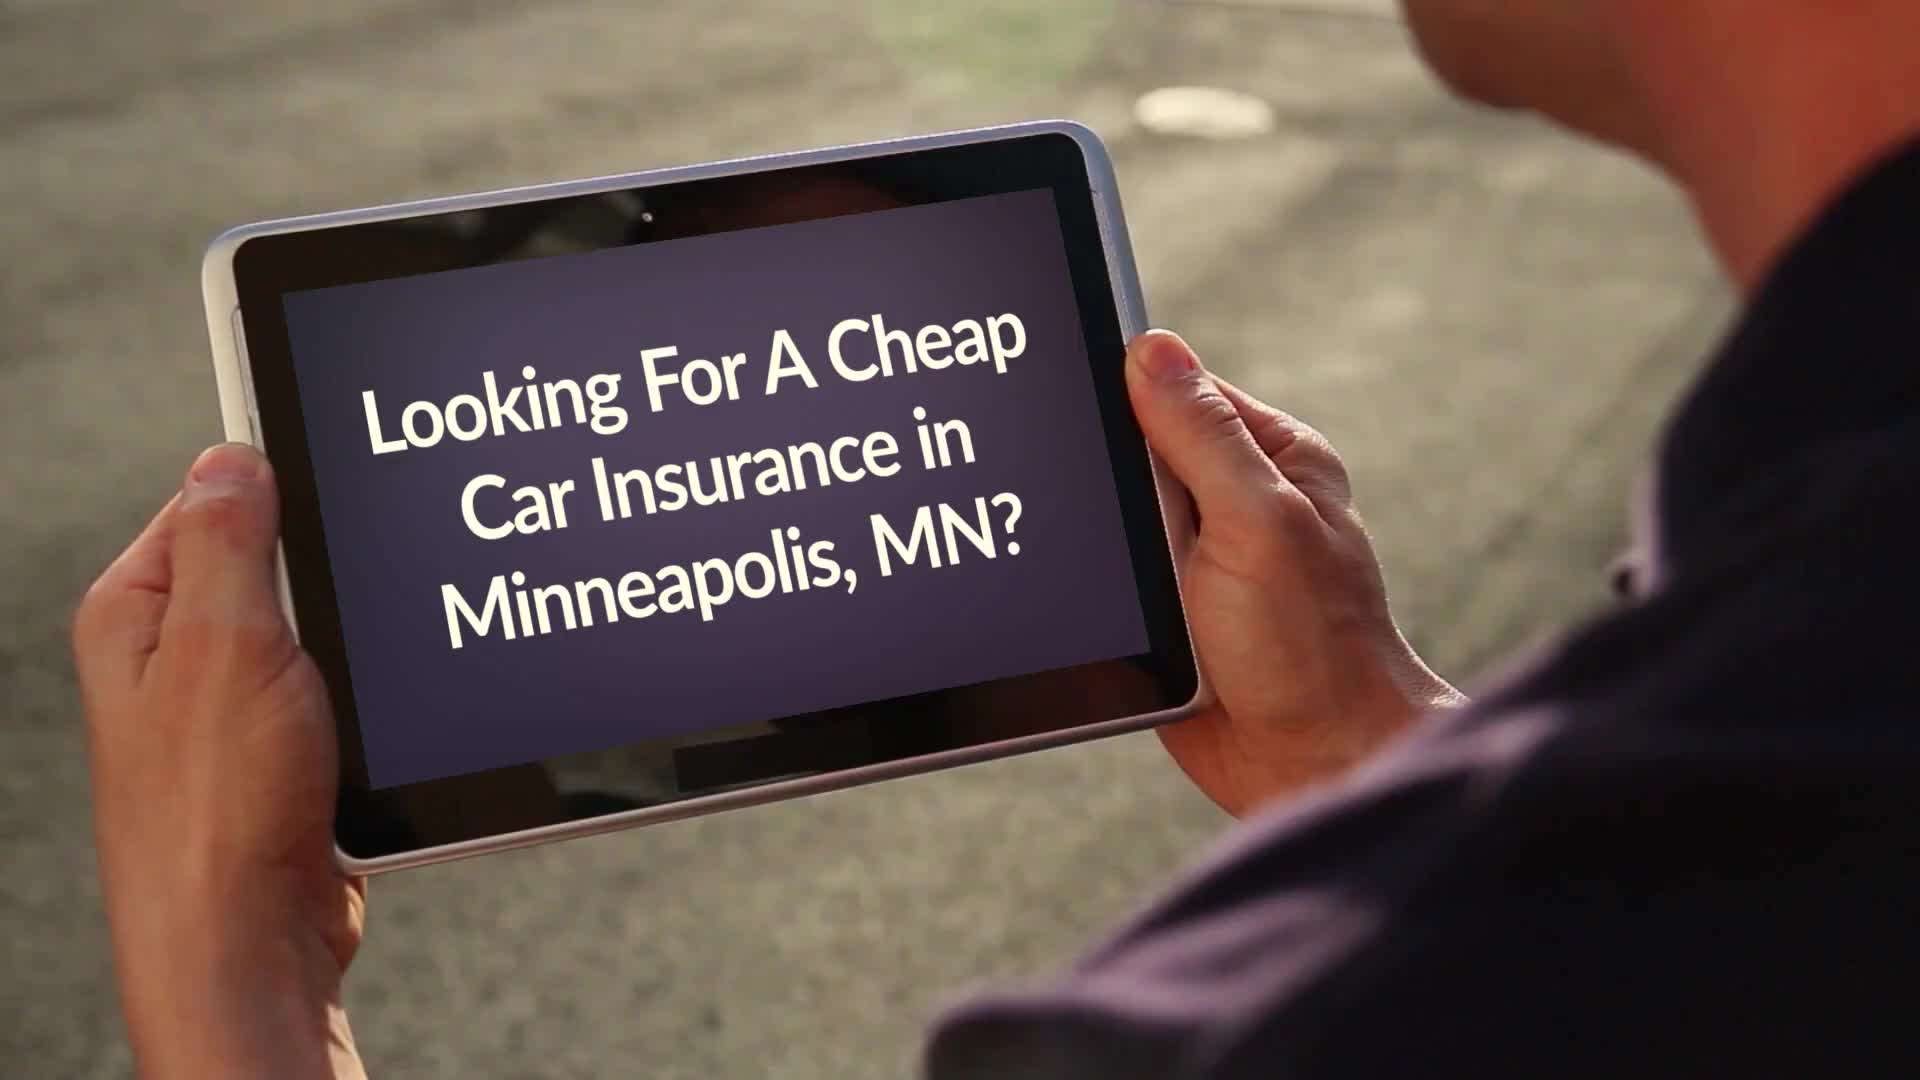 Cheap Car Insurance Minneapolis, Cheap Car Insurance in Minneapolis, People & Blogs, Get Cheap Car Insurance in Minneapolis GIFs